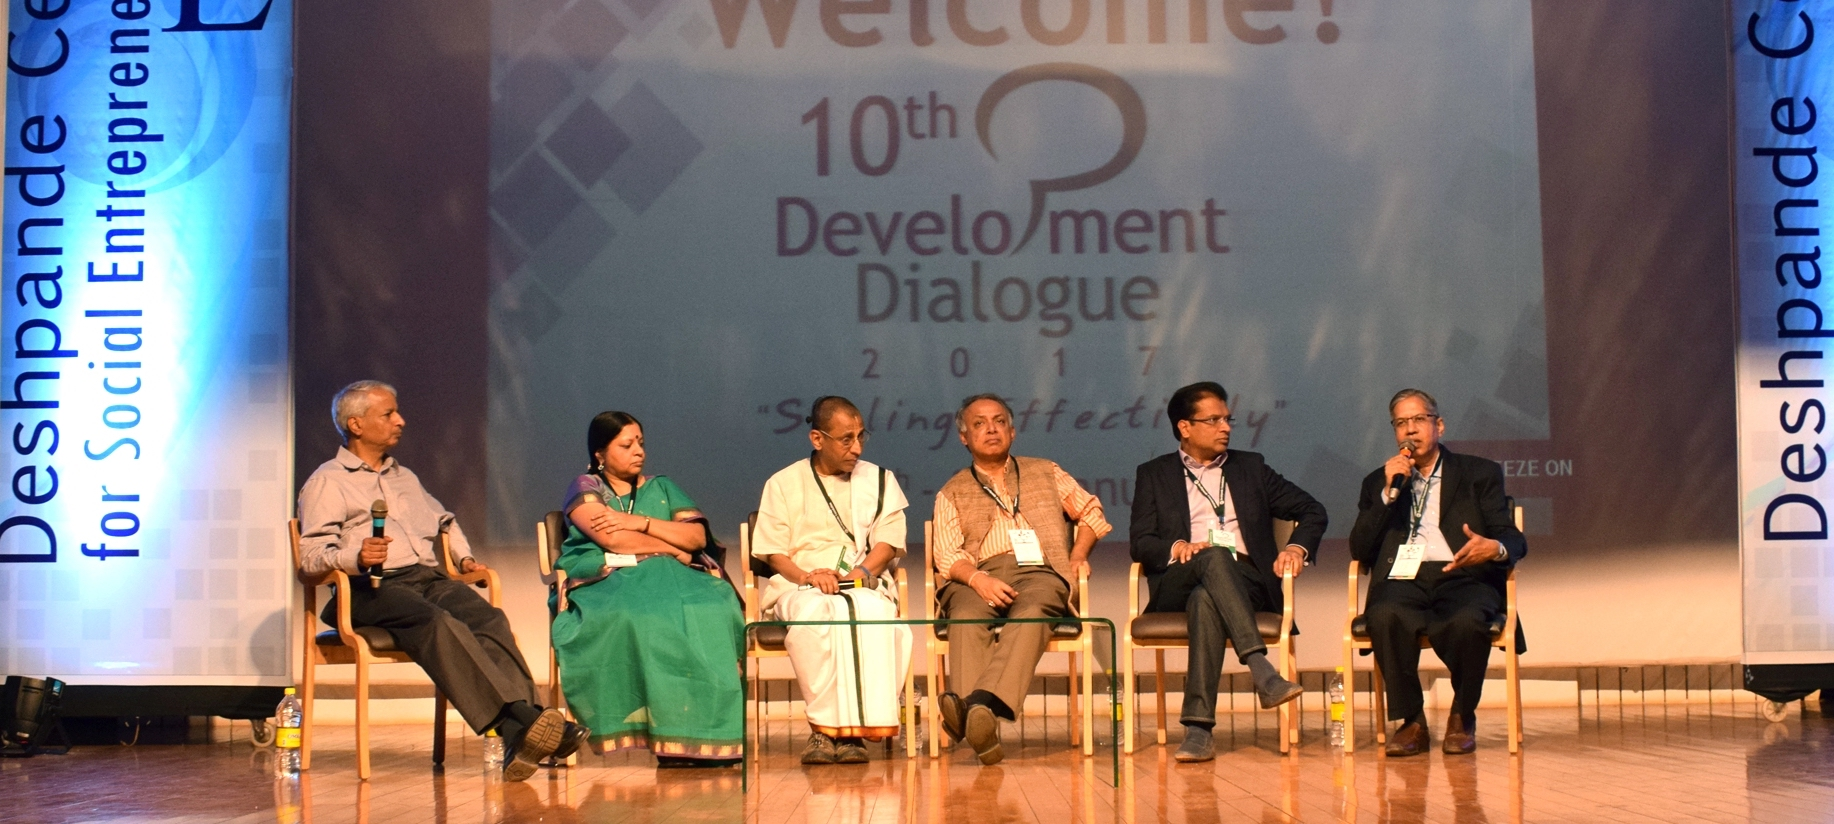 Development Dialogue